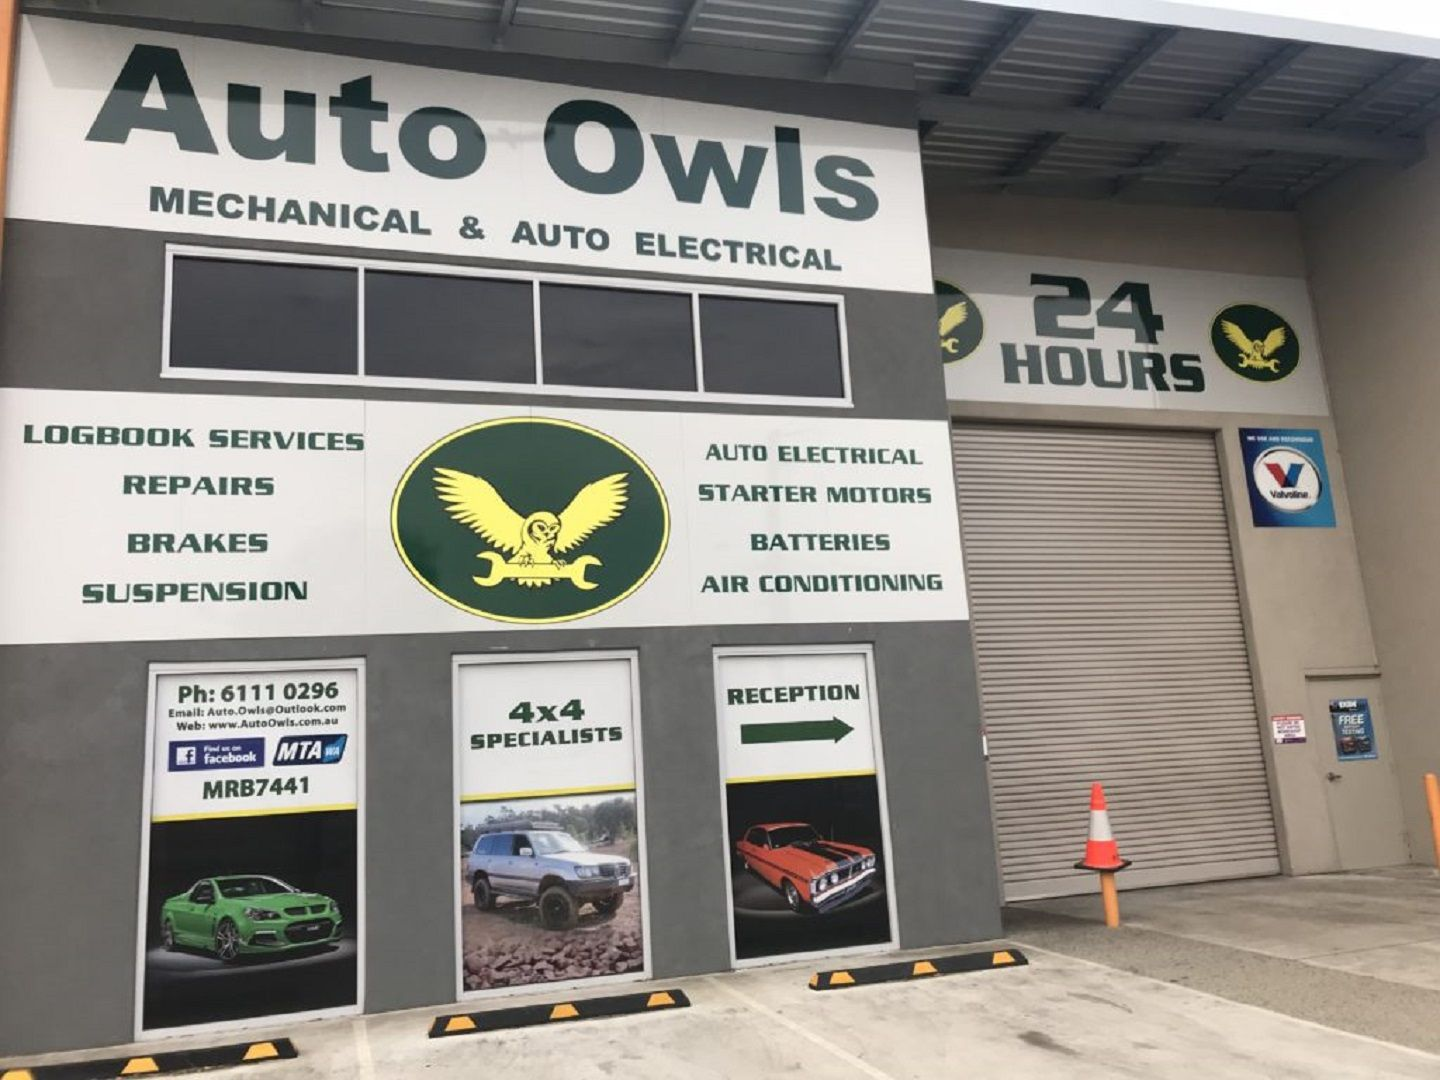 Auto Owls Is A Family Owned And Operated Car Servicing And Repair Business In Welshpool We Are Perth S Fir Car Repair Service Auto Service Center Auto Service